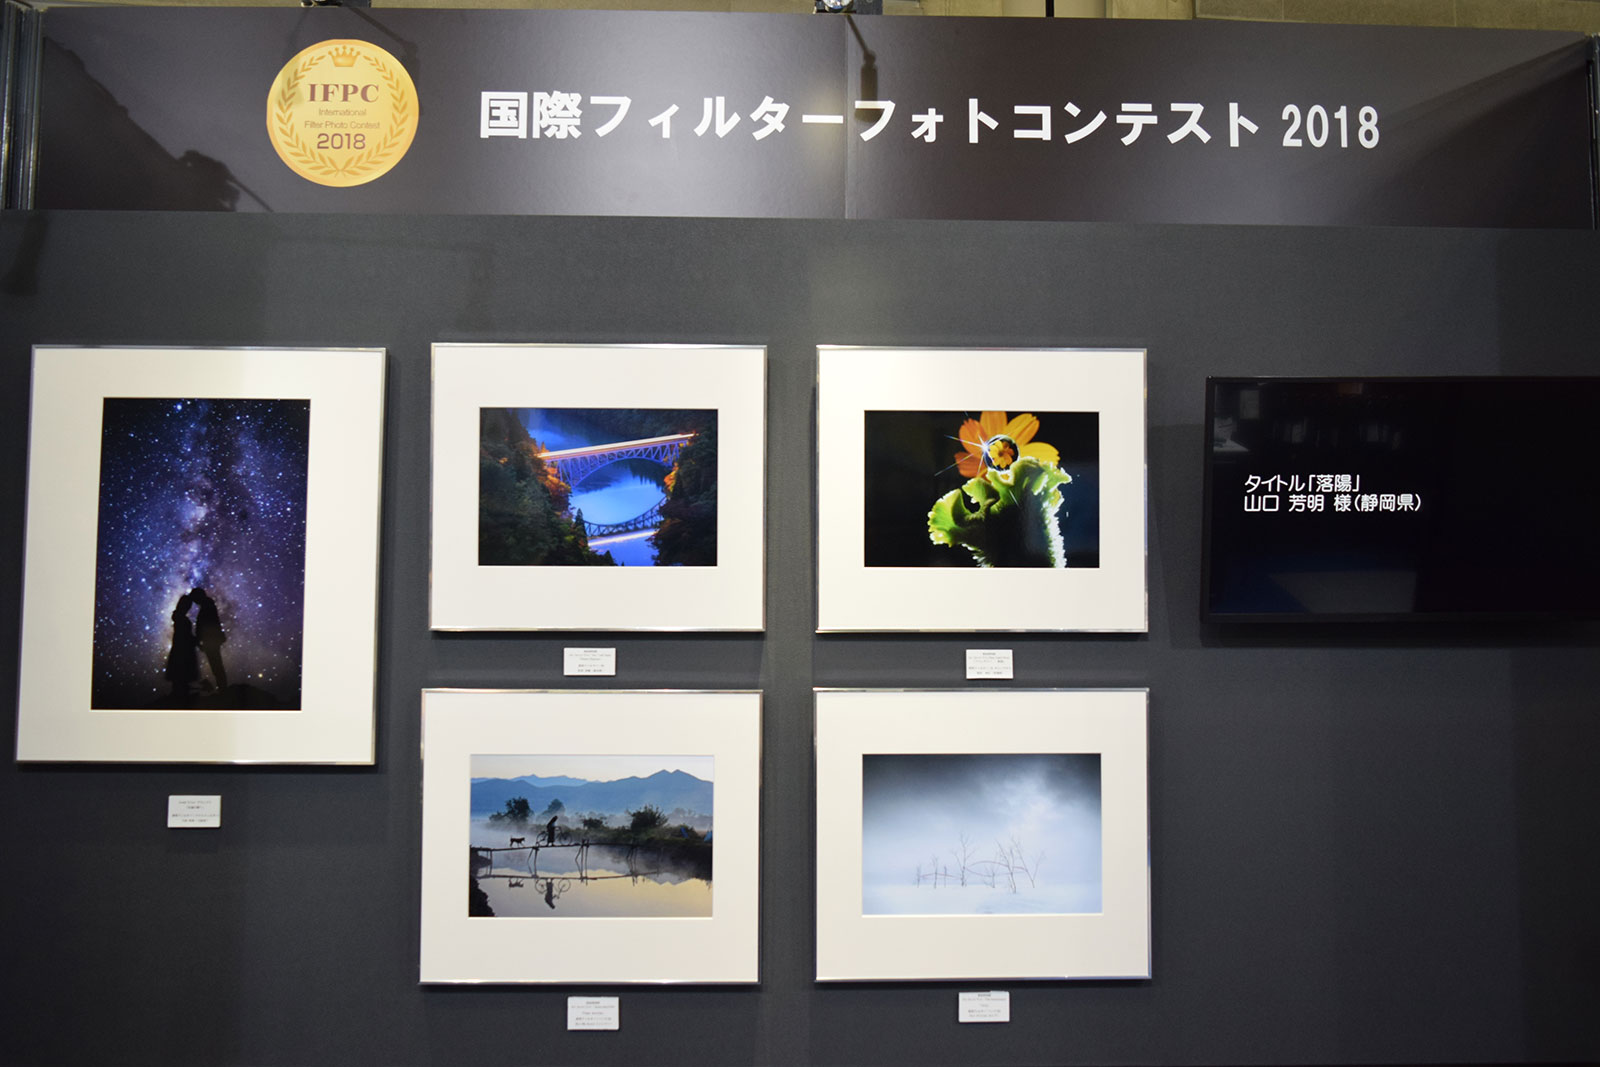 Last, but not least, the winner works of the International Filter Photo Contest (IFPC) 2018 were also exhibited in a dedicated corner.